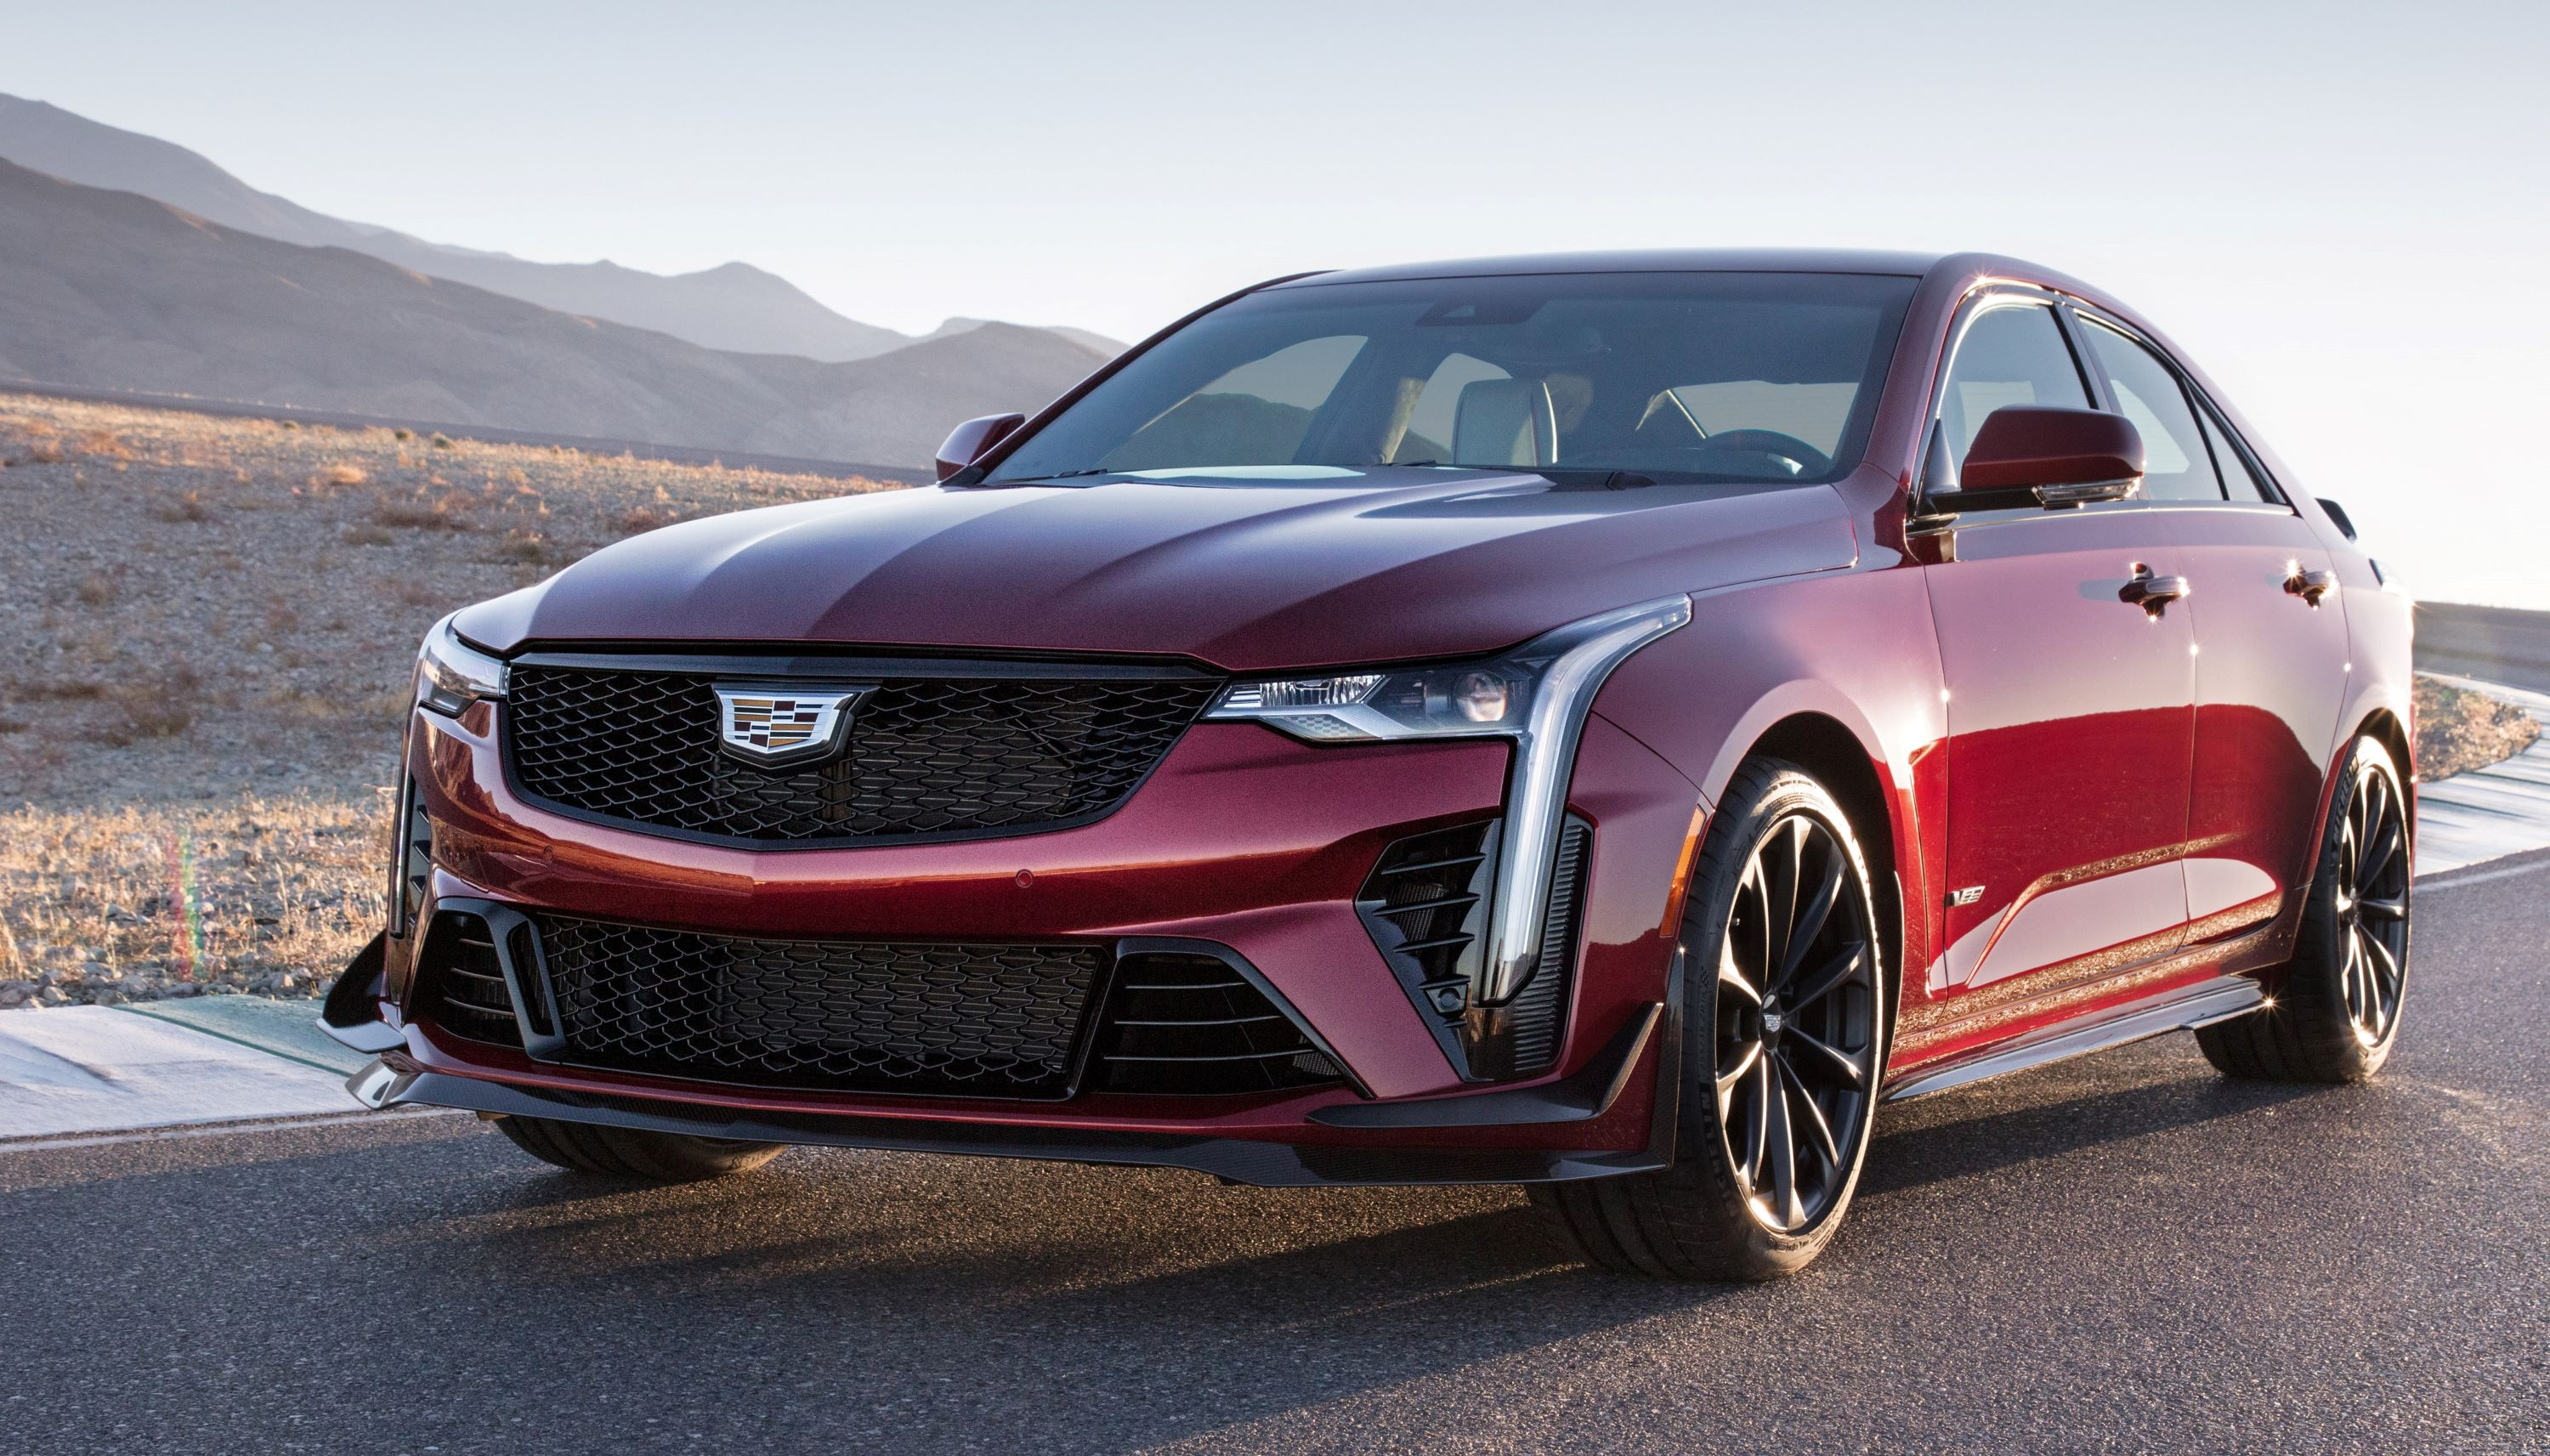 2022-Cadillac-CT4-V-Blackwing-003